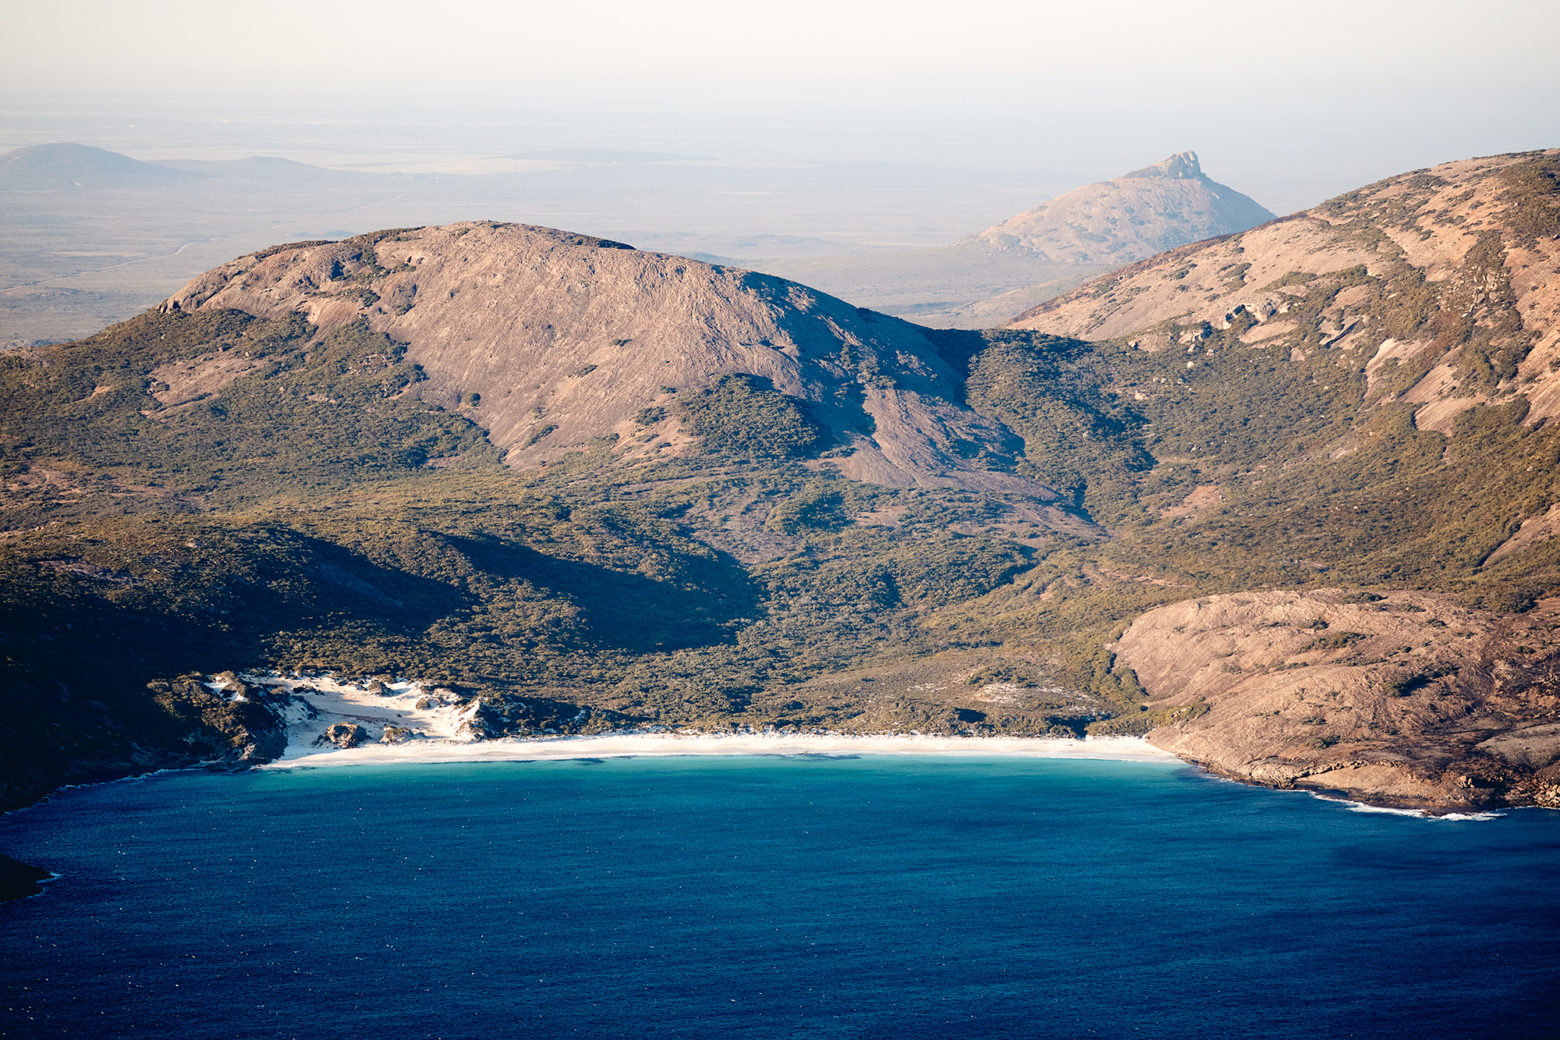 Esperance's beaches are some of the best in the country - and they're very uncrowded